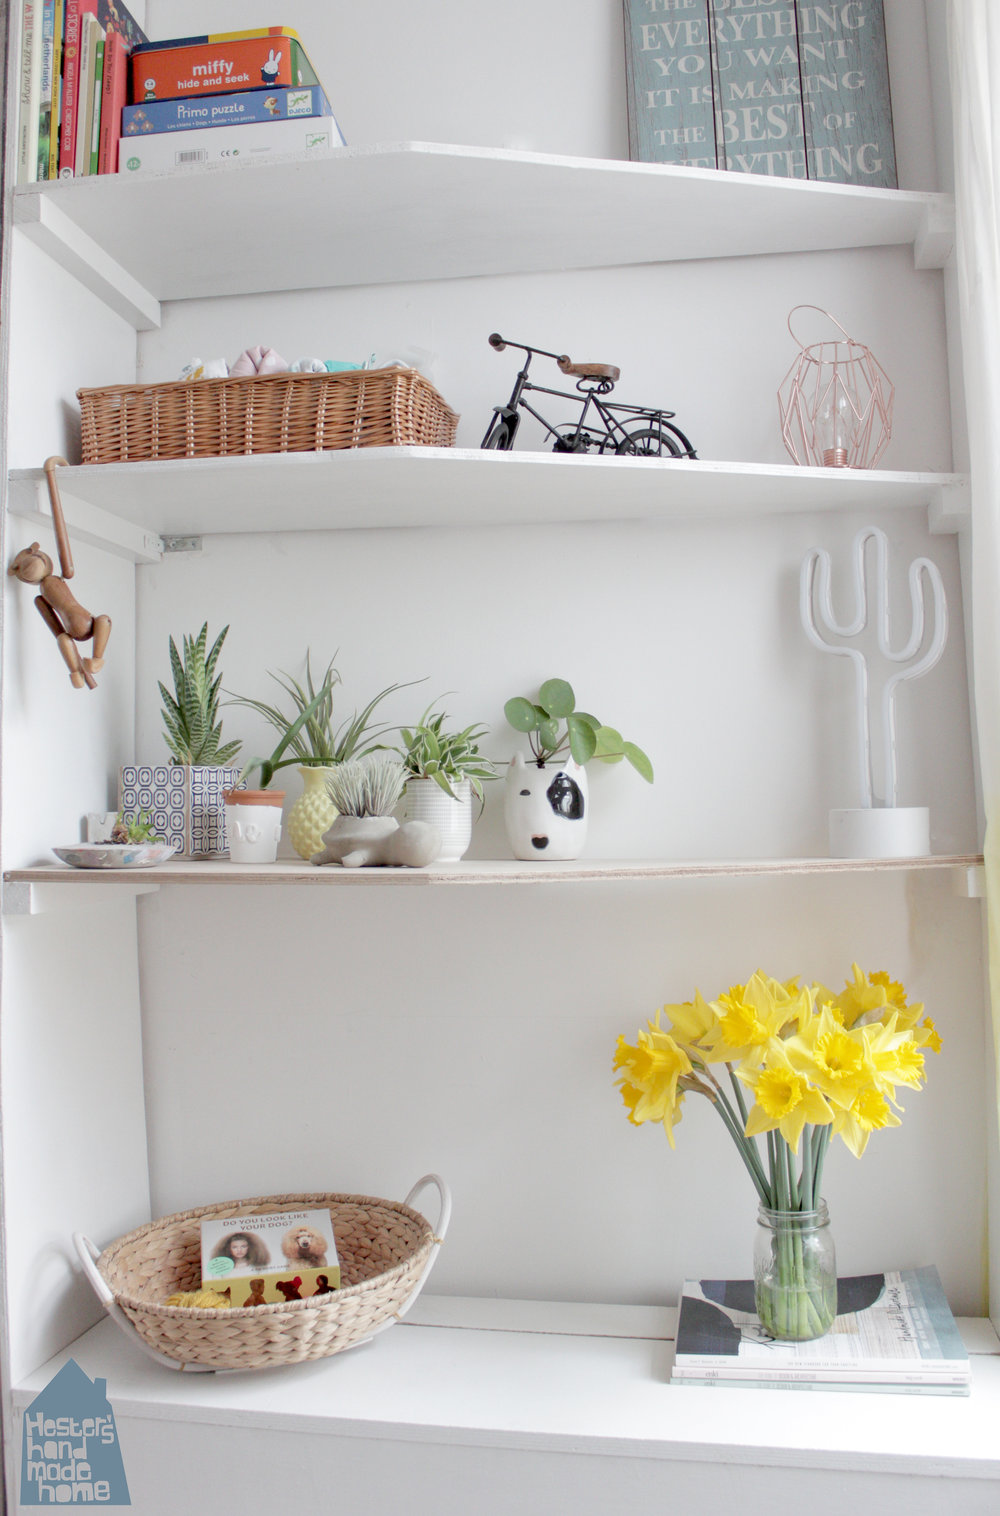 Alcove shelving and creating lots of storage by www.hestershandmadehome.com